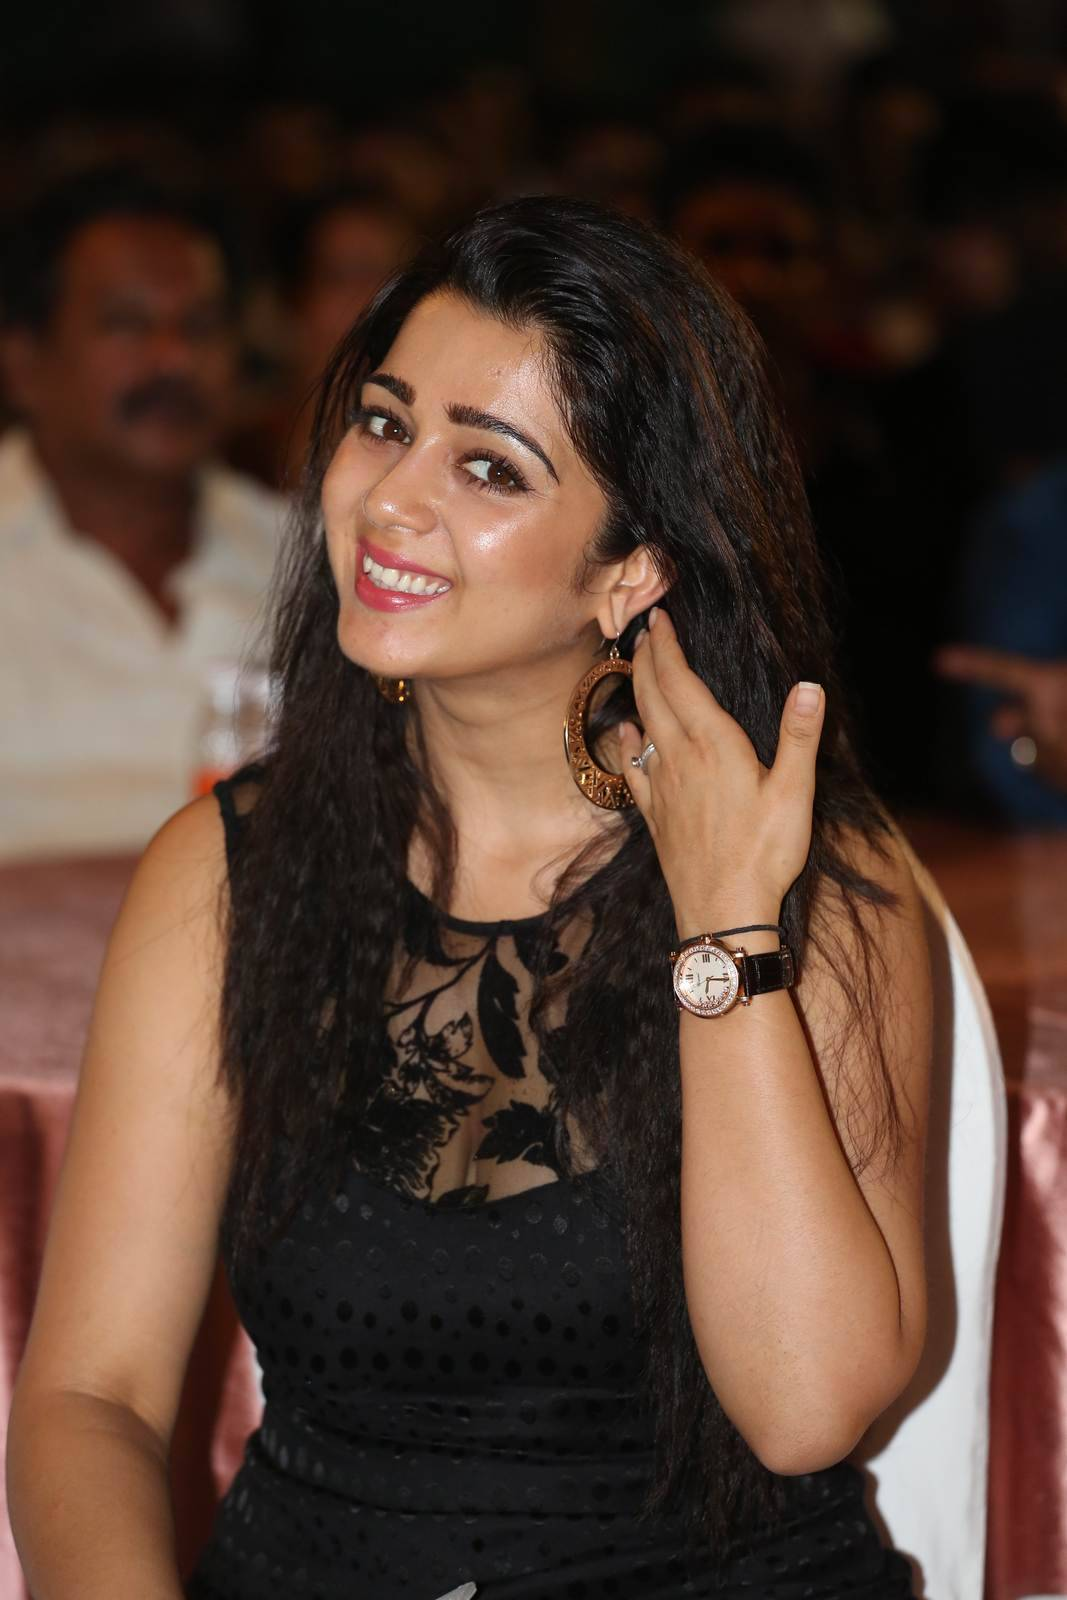 Charmi Photoshoot Stills, Charmee Kaur Pics Clicked in Black Dress at Event